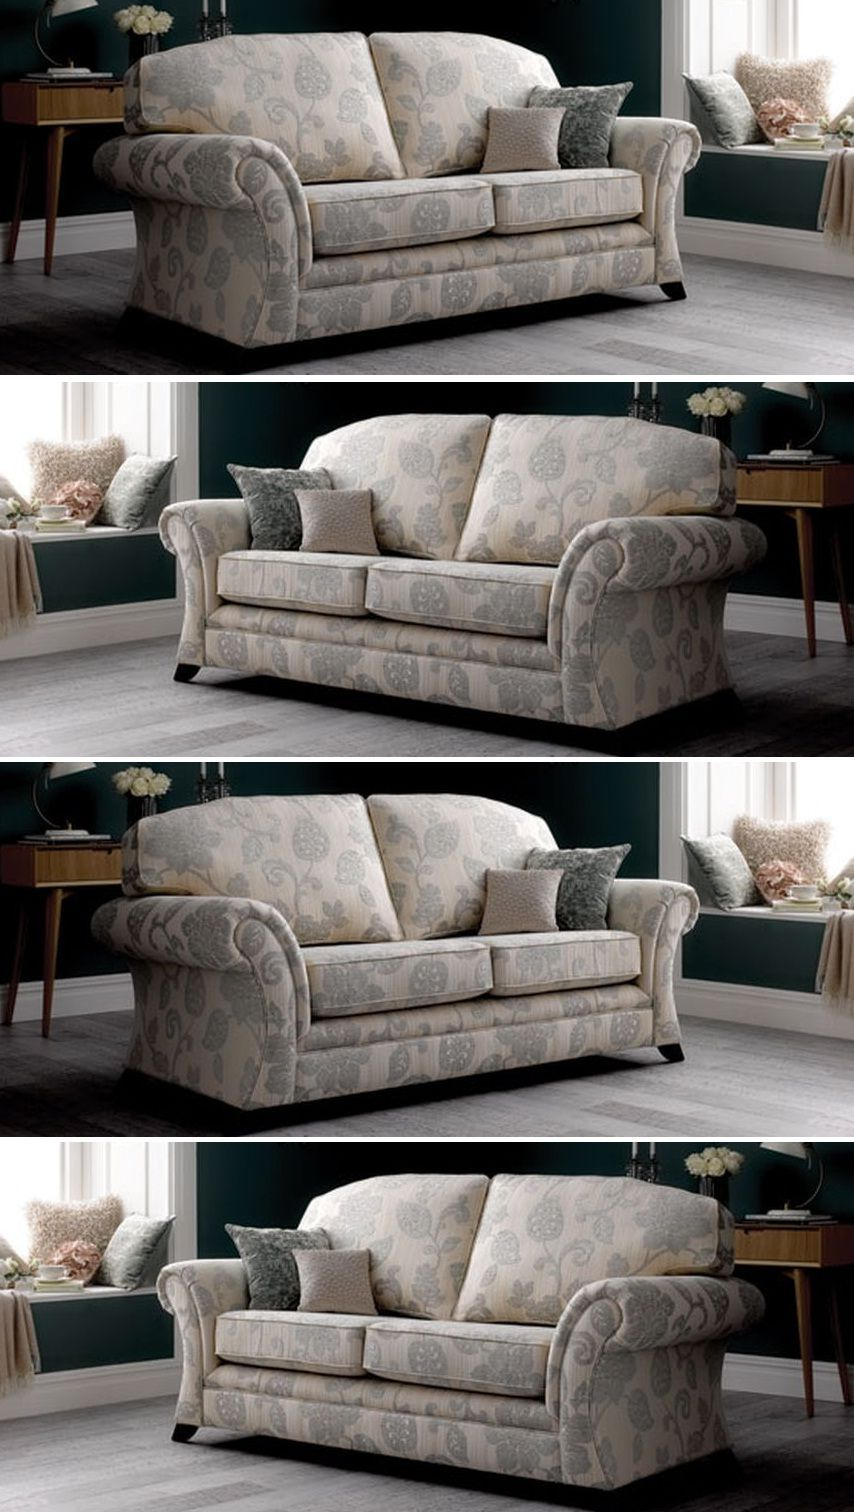 Floral Print Fabric Sofas Latest Sofa Designs Printed Fabric Sofa Sofa Set Designs